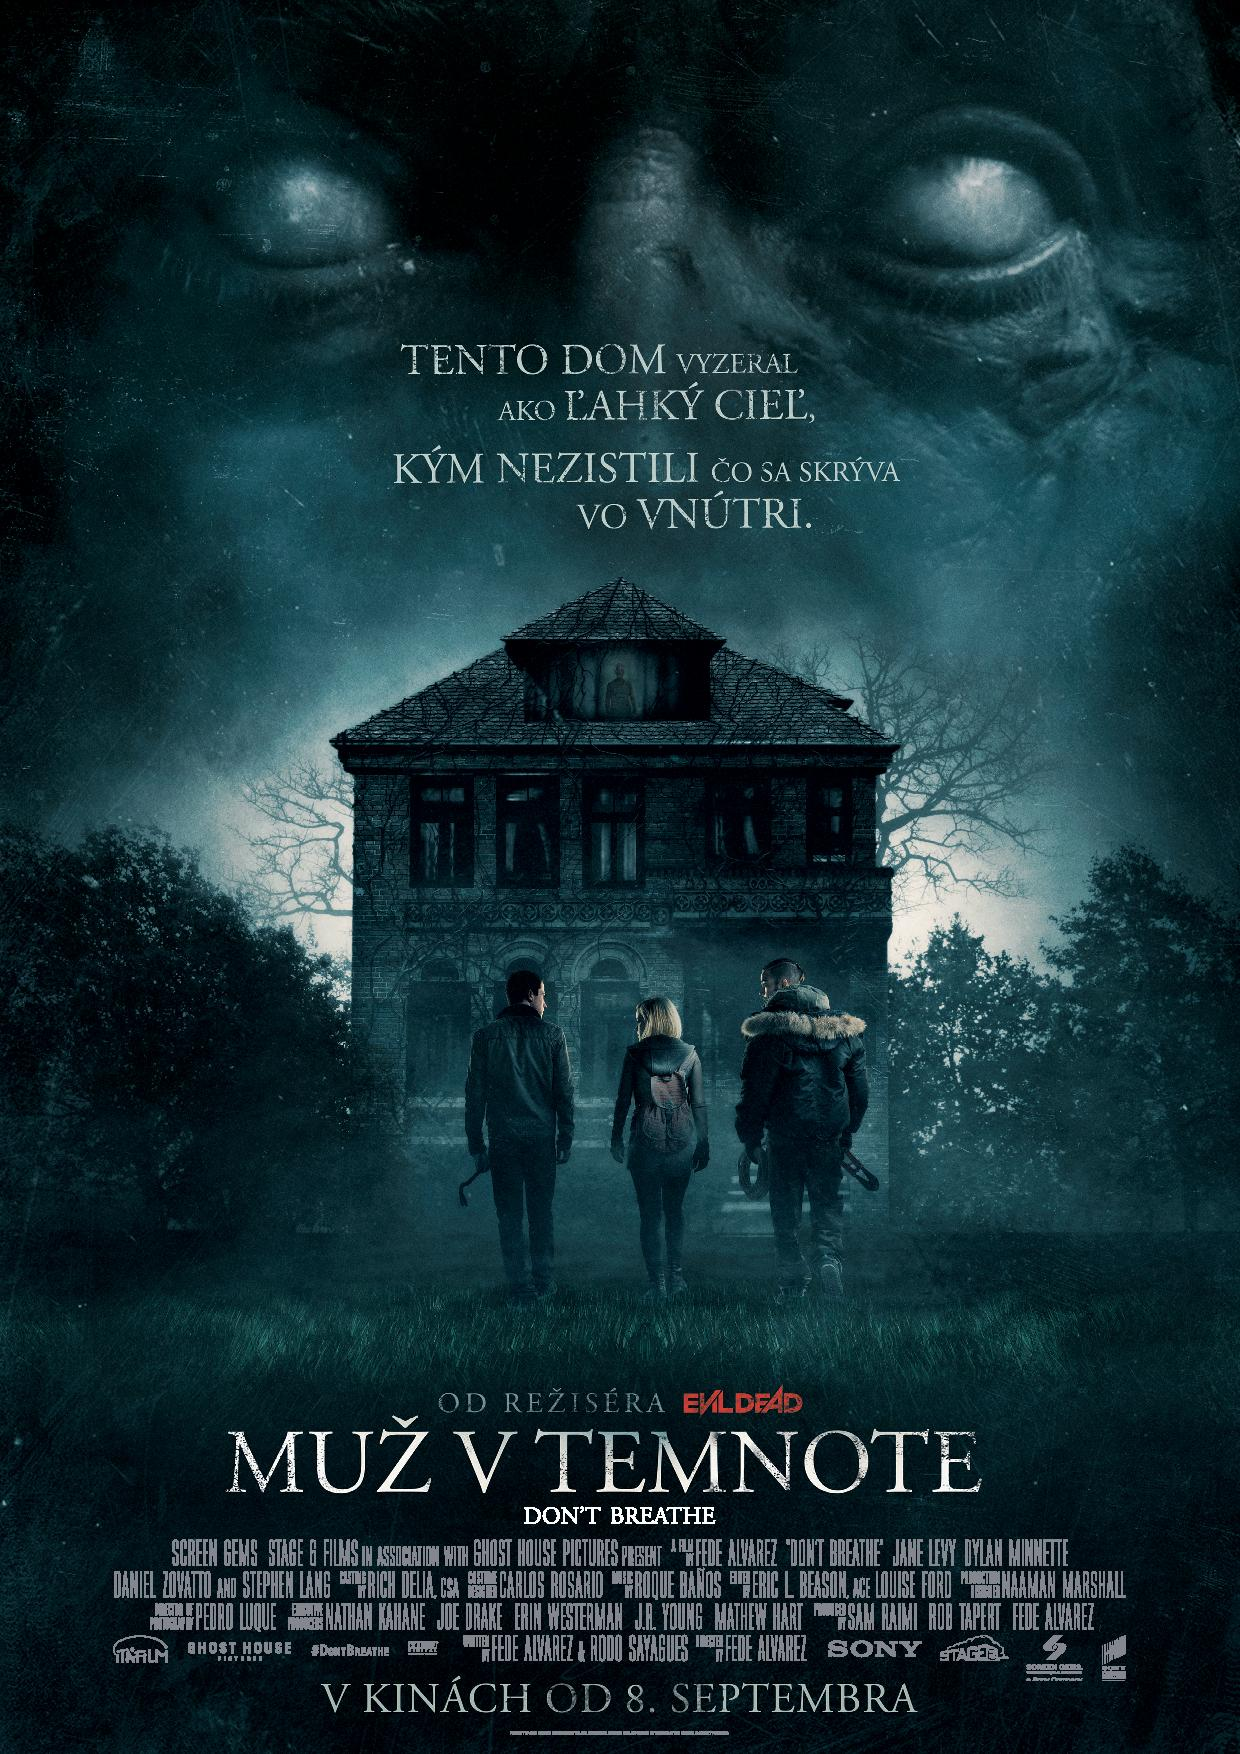 Muž v temnote (Don't Breathe)